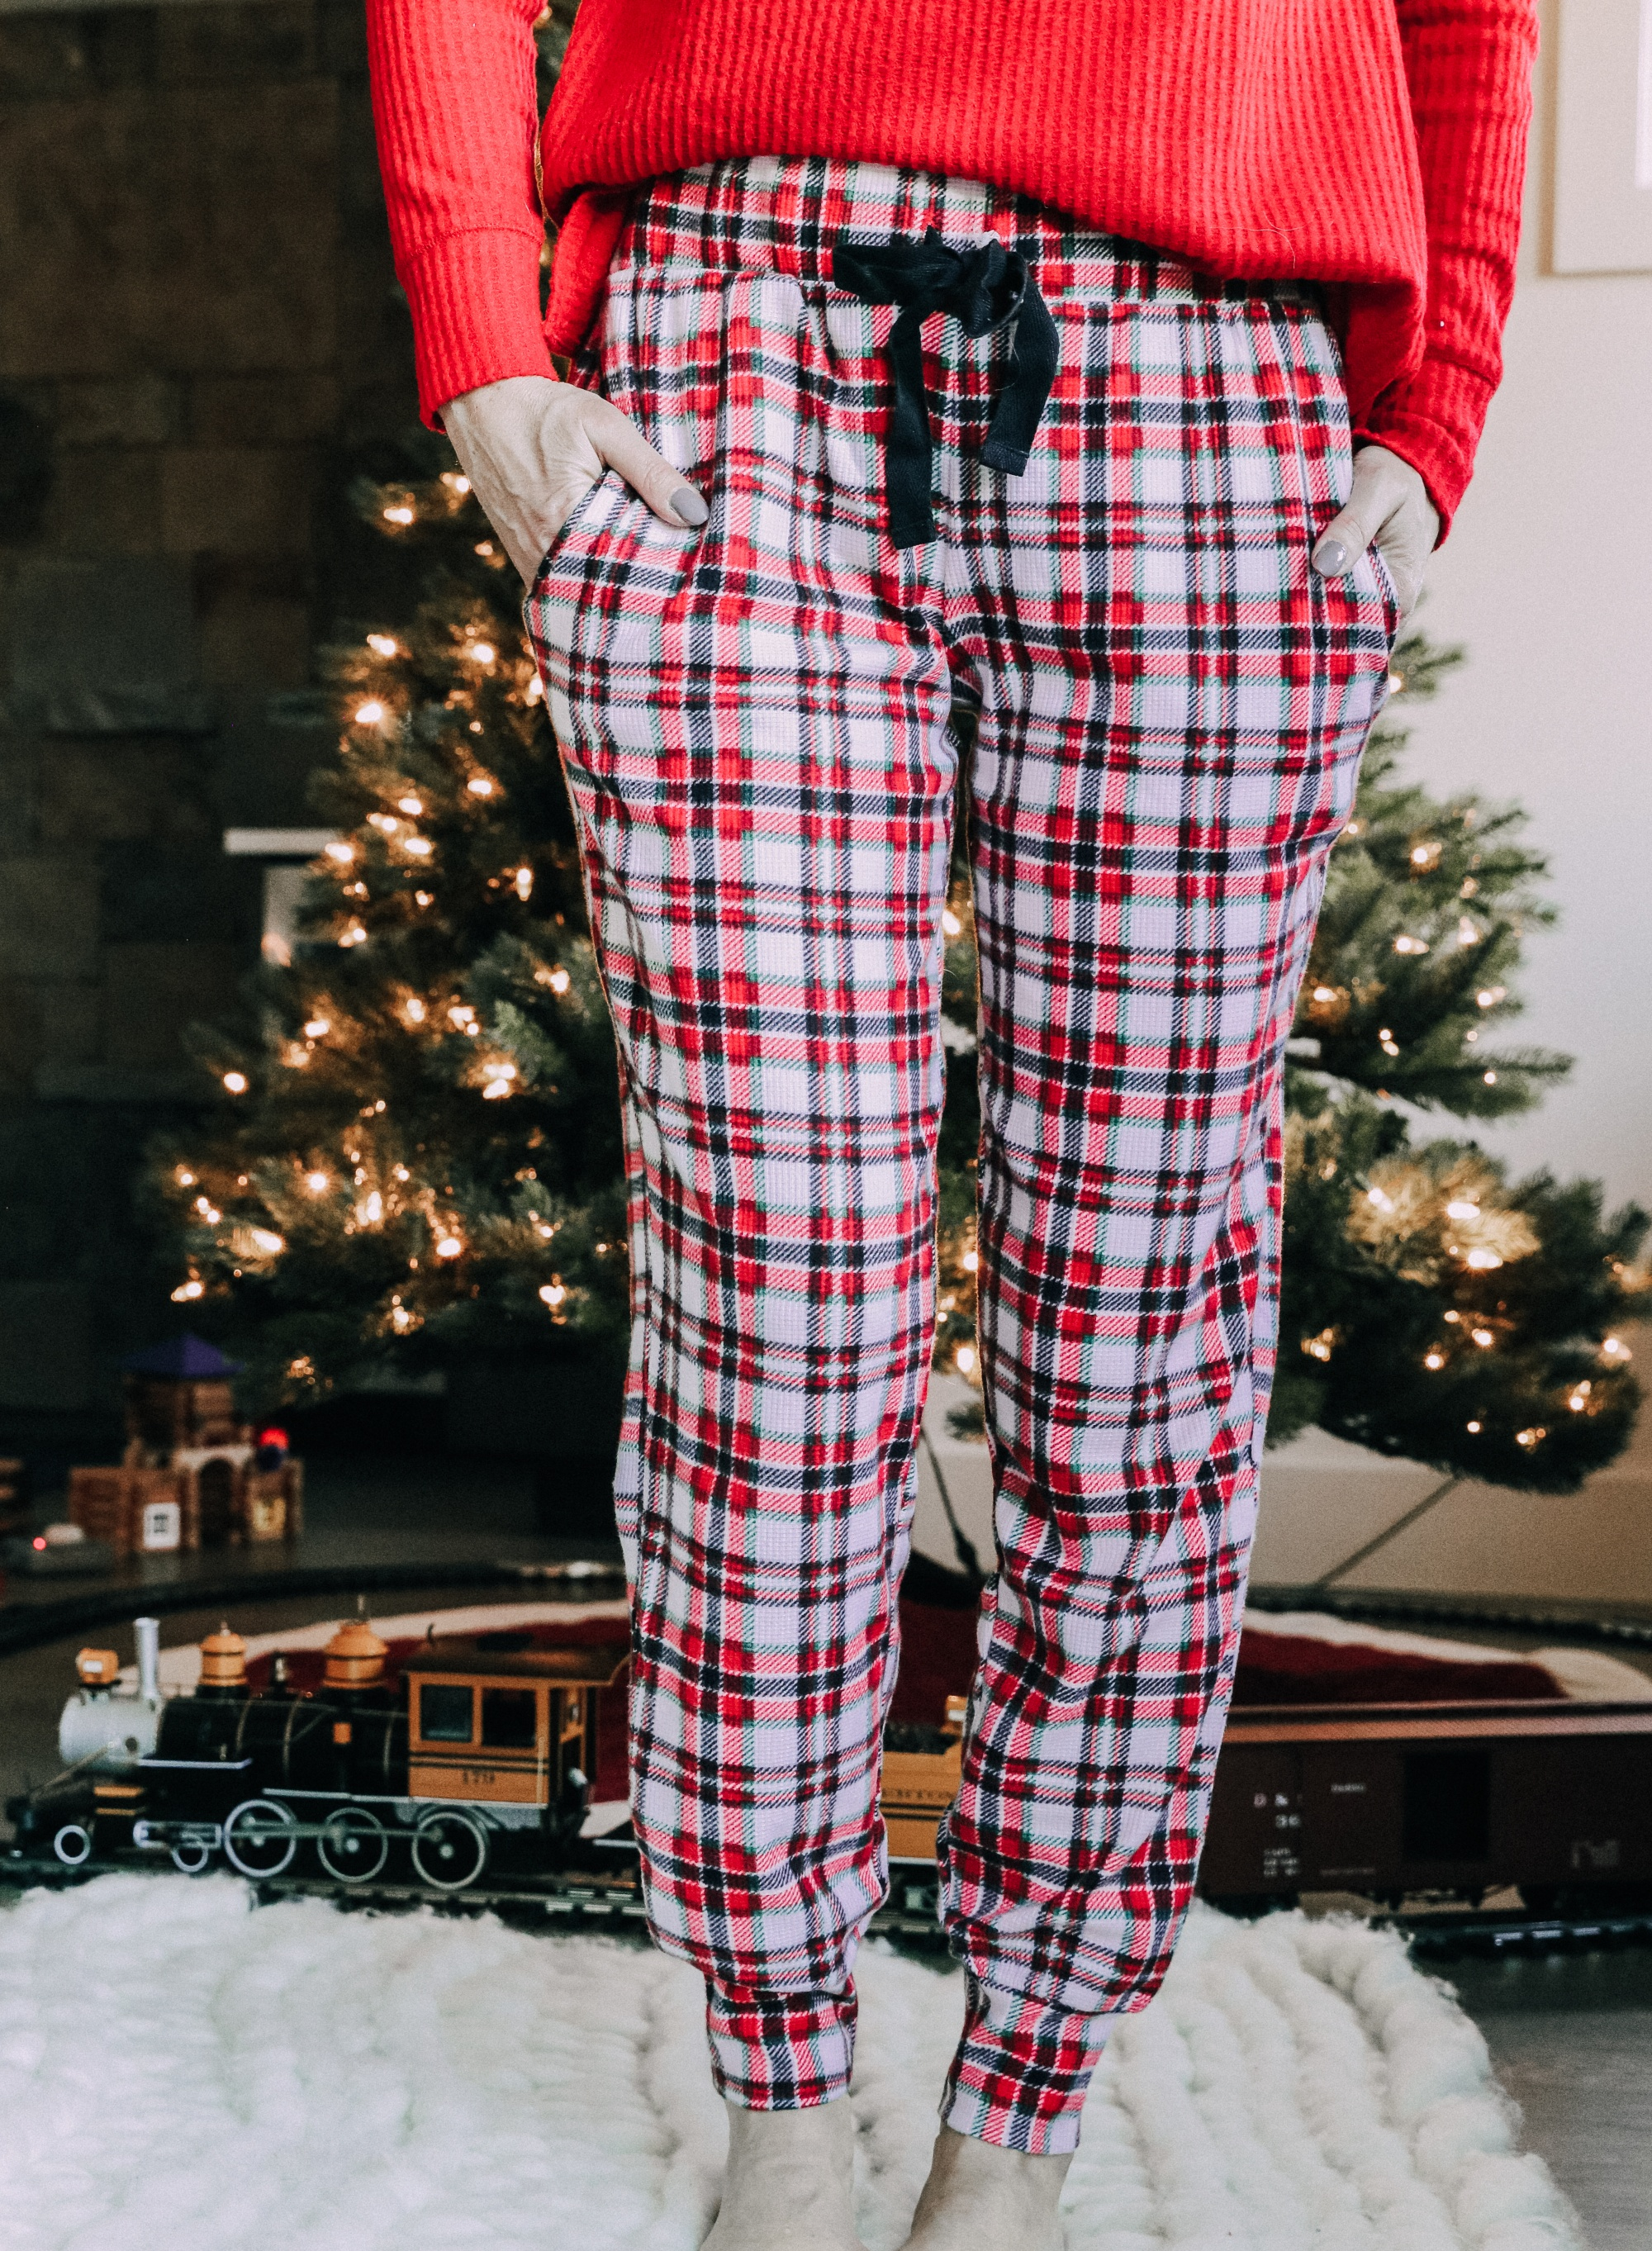 How to make holiday decorating easier, Fashion blogger Erin Busbee of BusbeeStyle.com sharing how to make the holidays more stress free wearing plaid pajamas and a red top by Jockey by her pre-lit tree in Telluride, CO